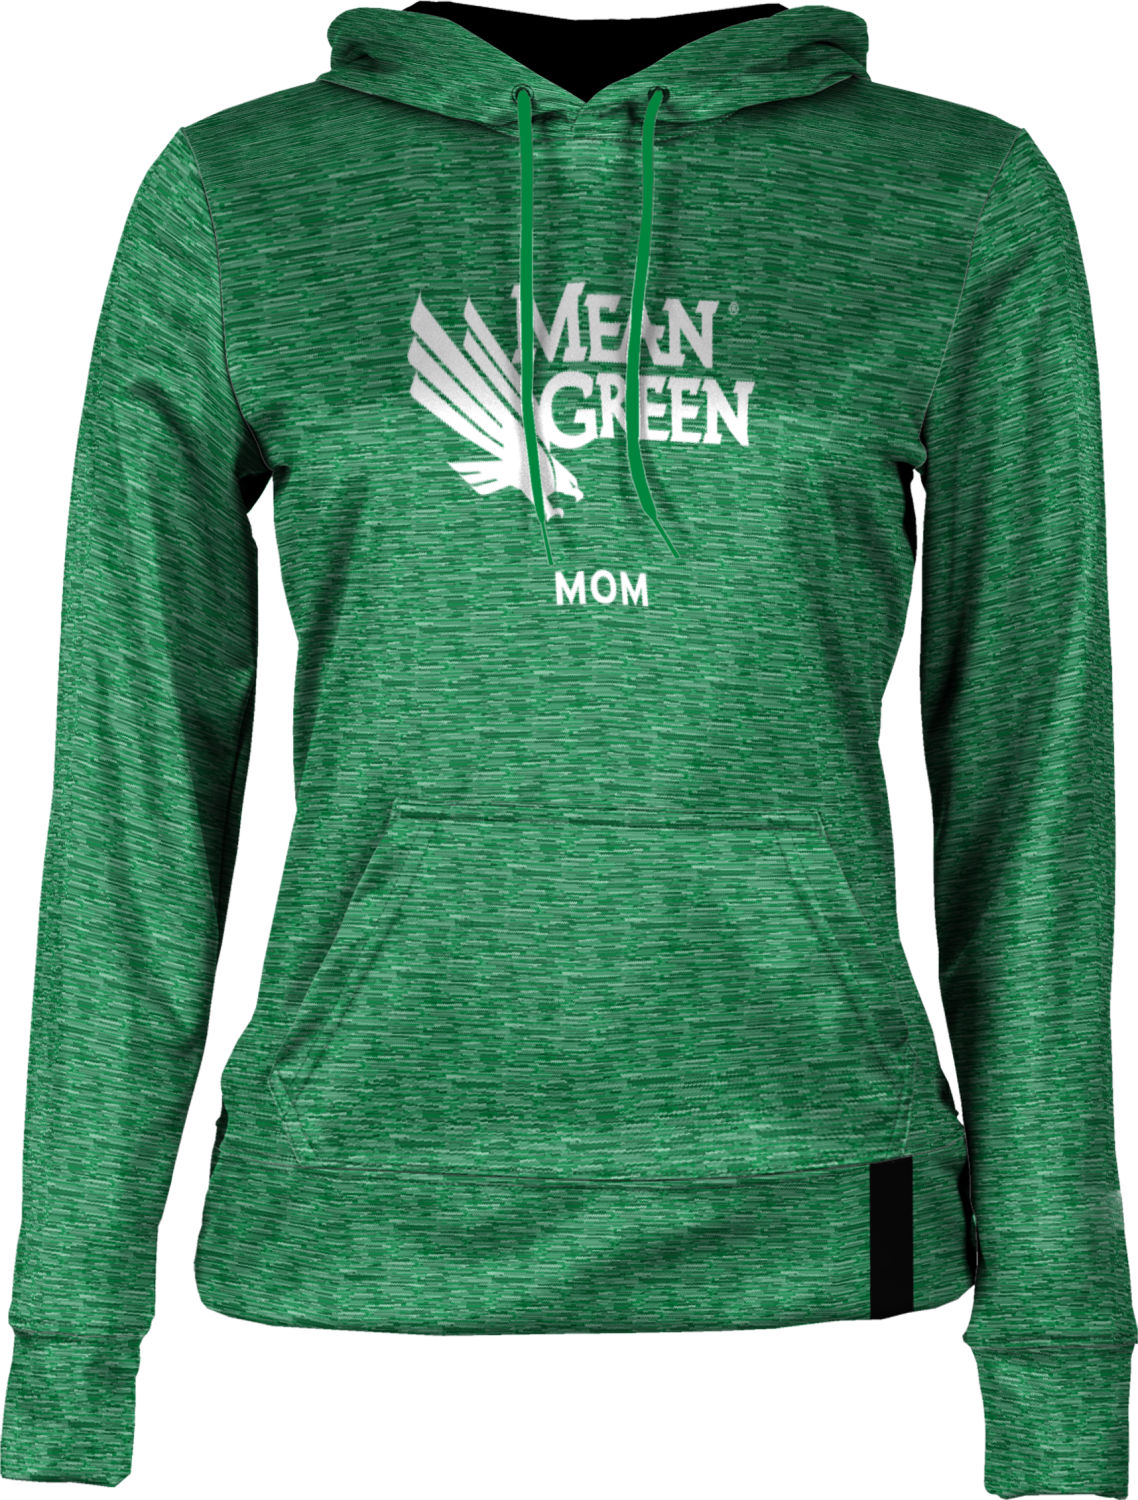 Women's ProSphere Sublimated Hoodie - Mom